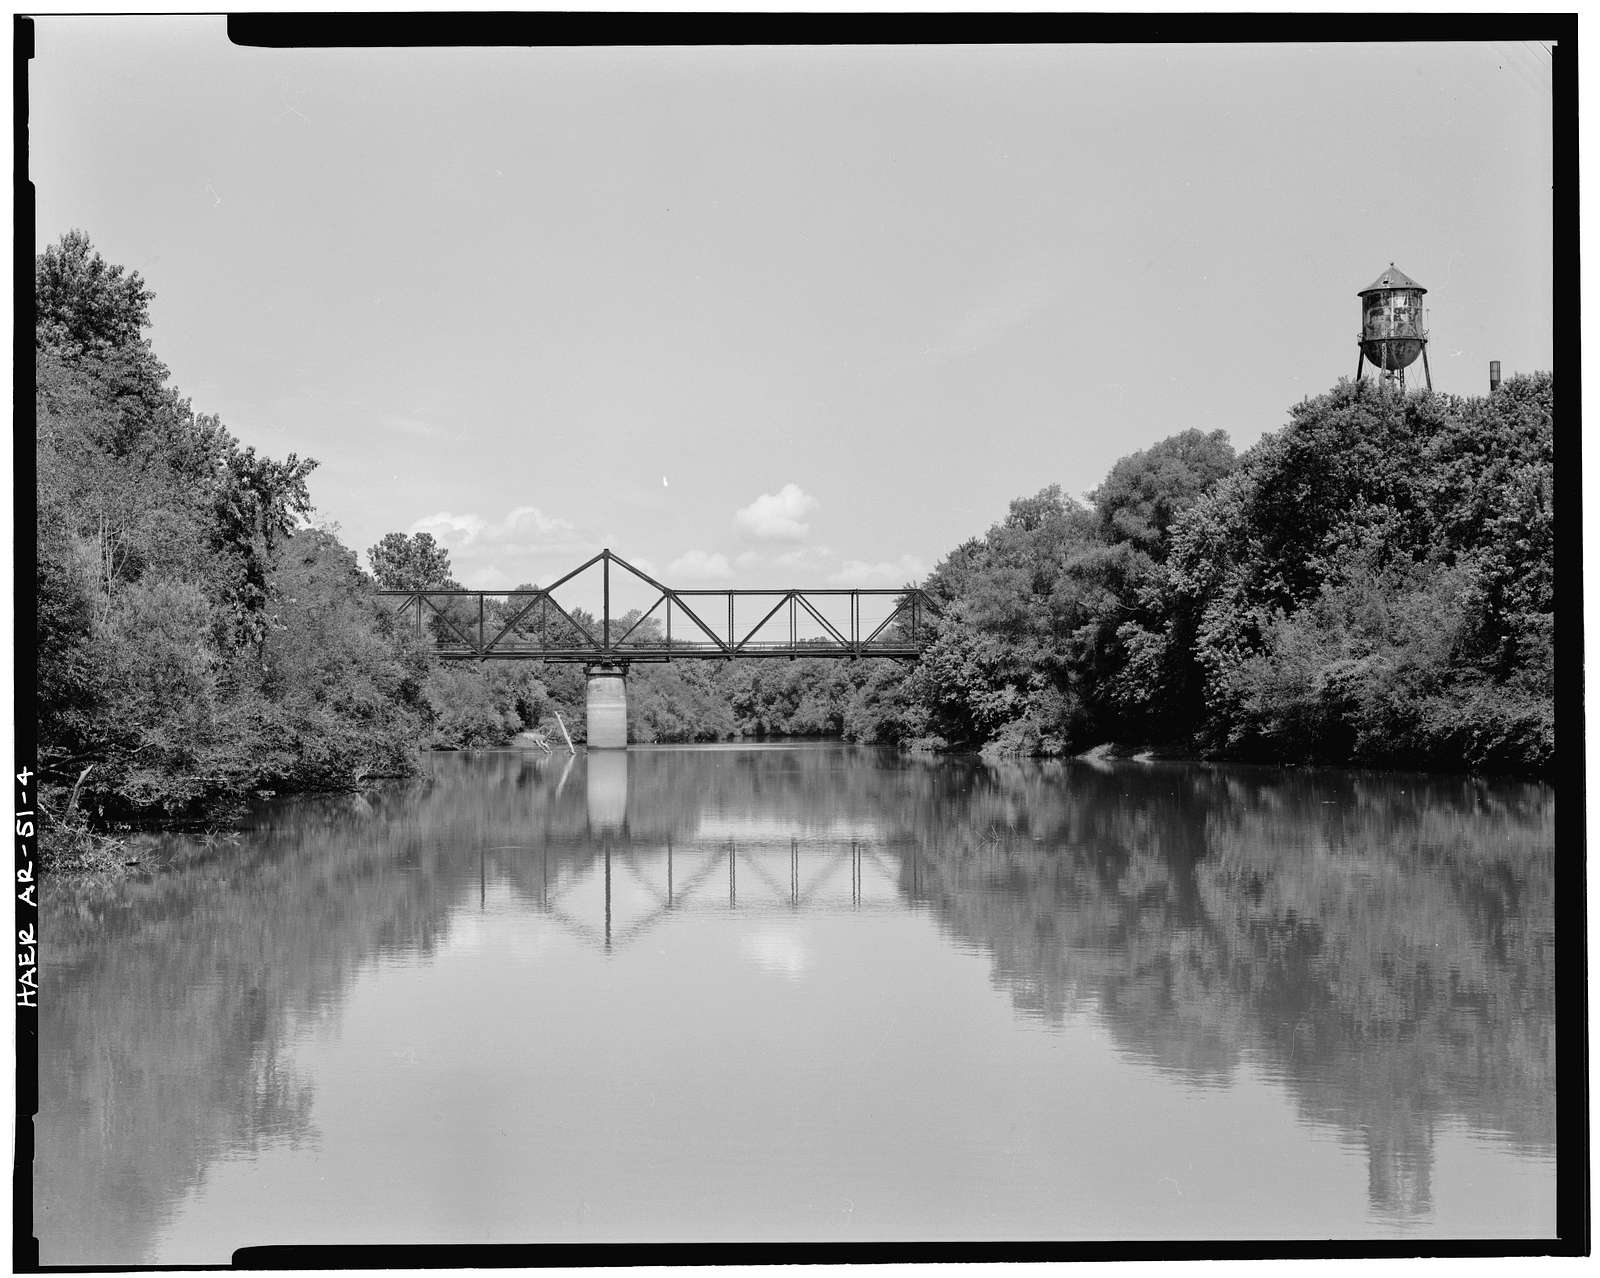 Judsonia Bridge, Spanning LIttle White River at County Road 66, Judsonia, White County, AR